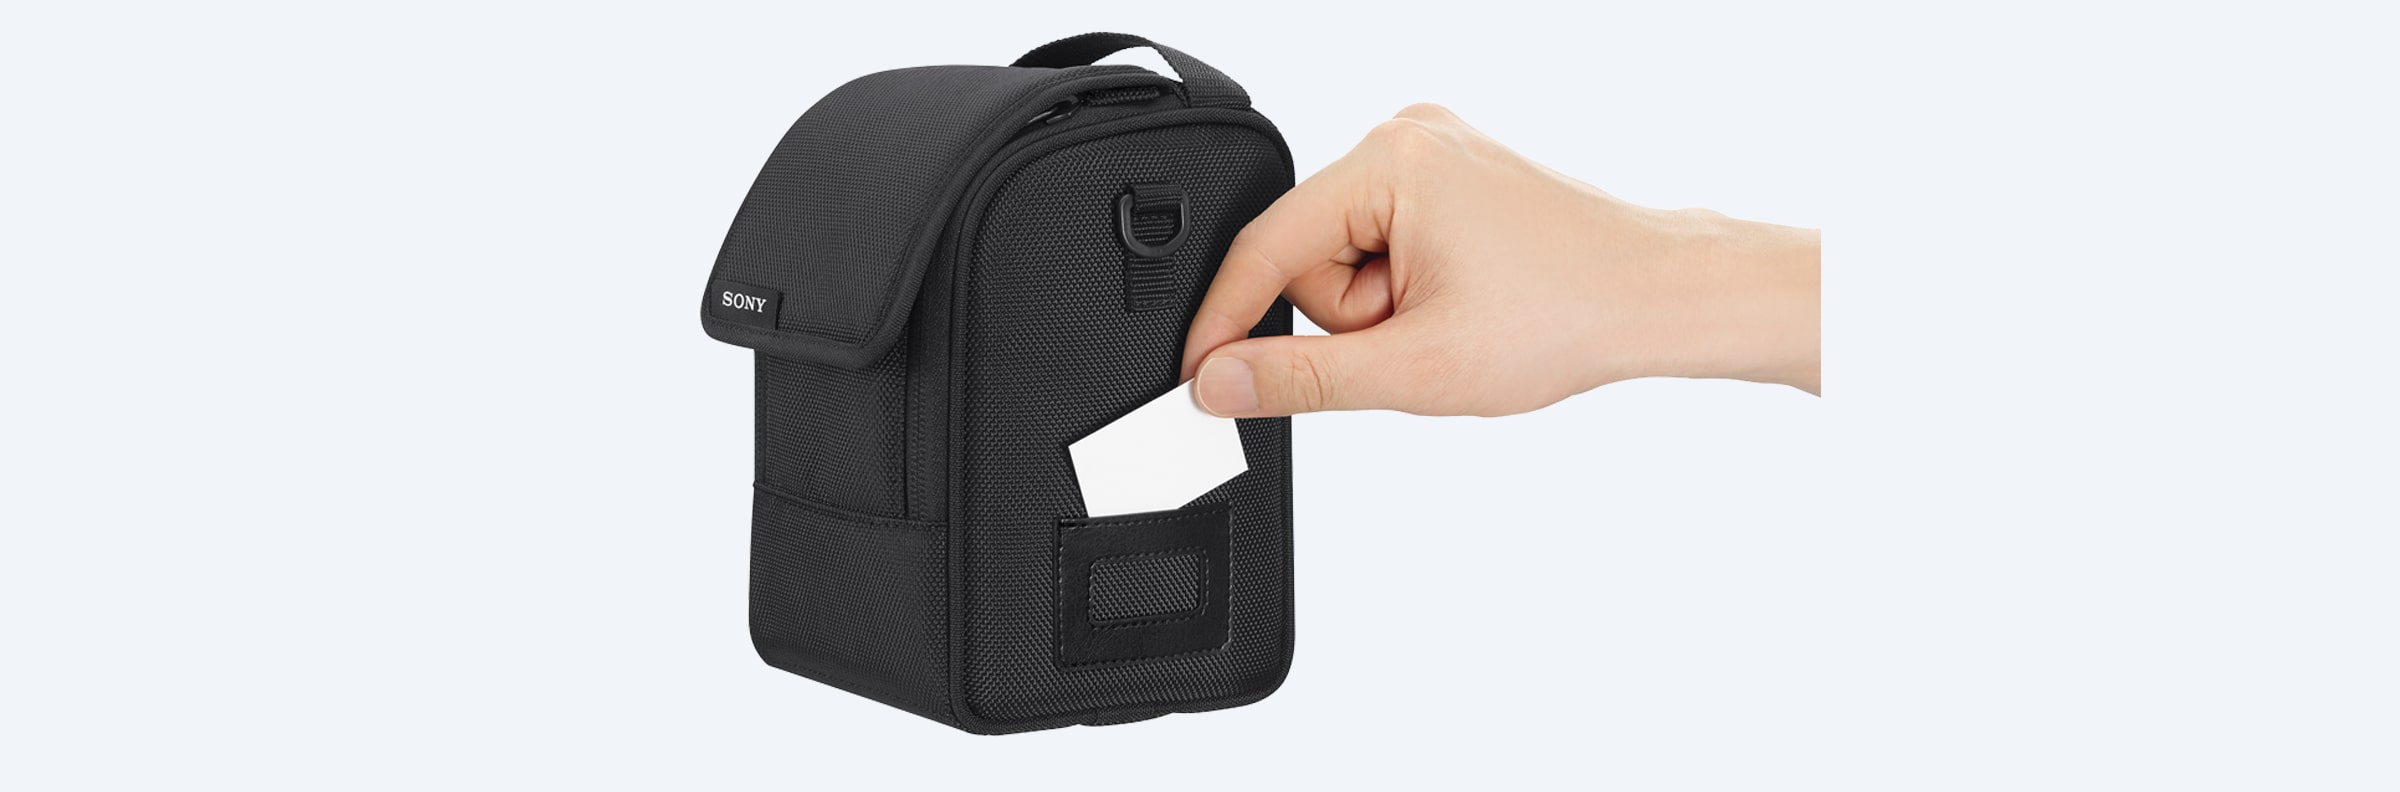 LCS-FEA1 Soft Carrying Case for Lenses in action